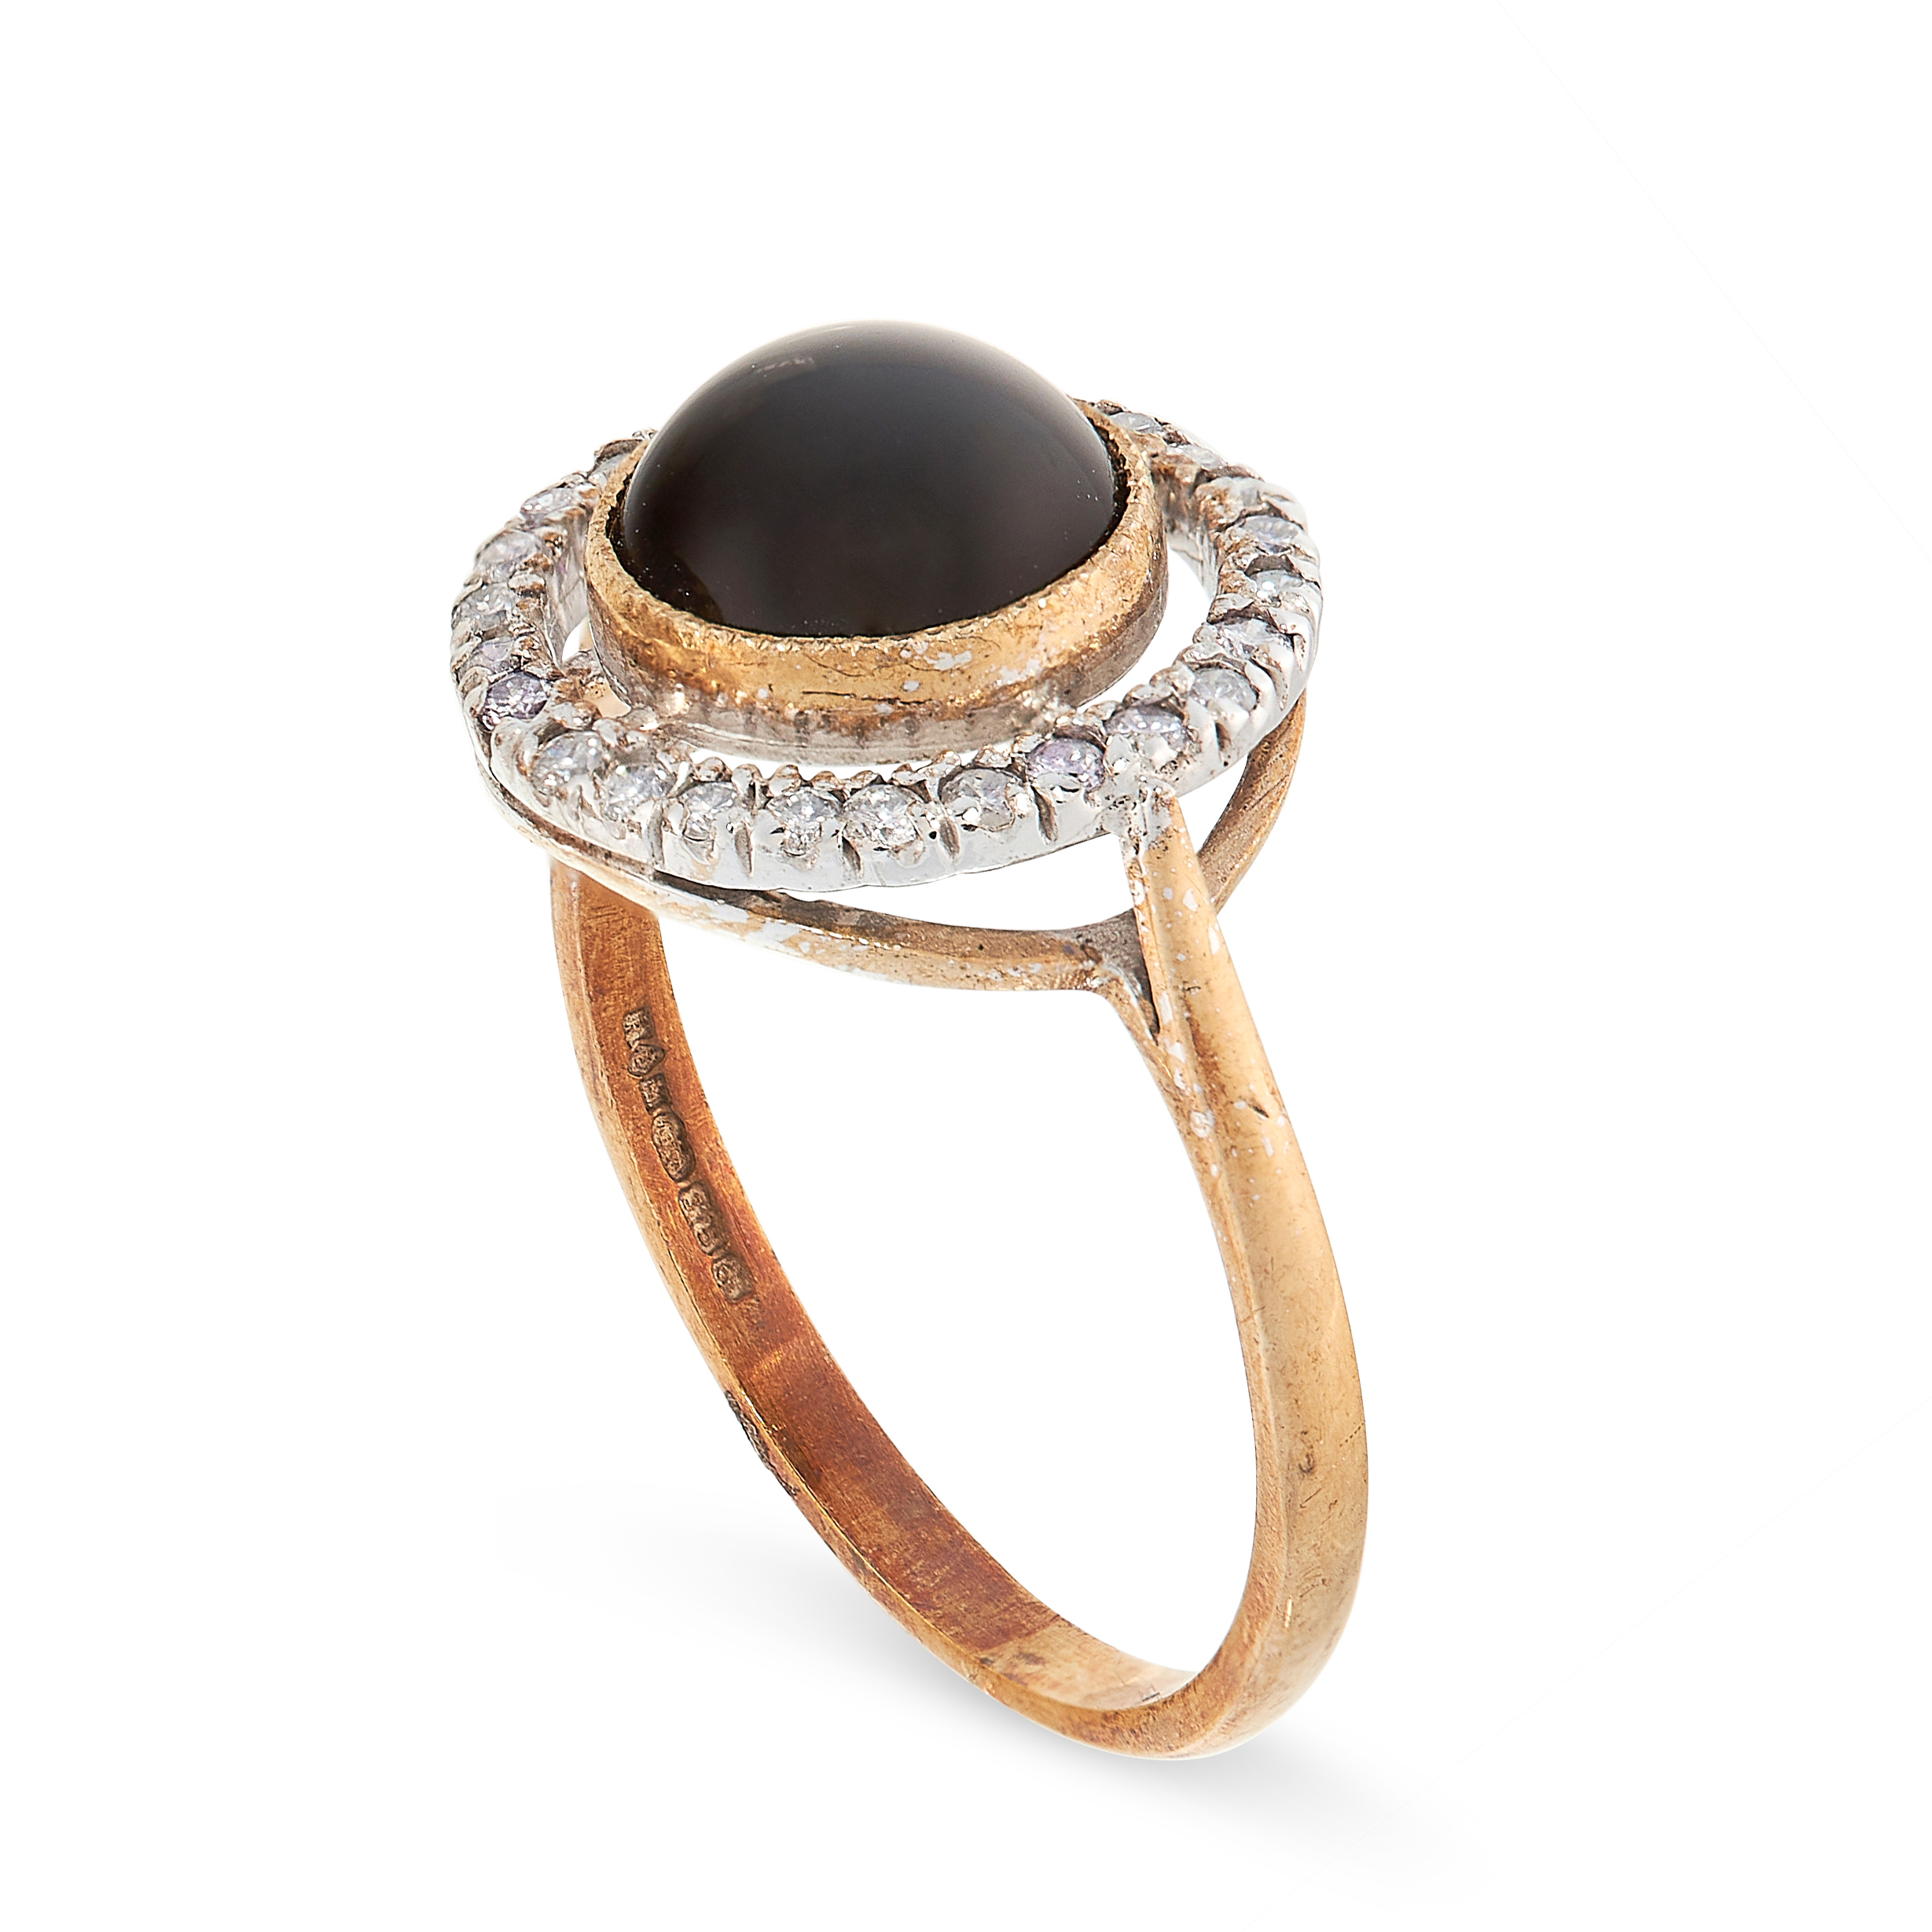 ONYX AND DIAMOND RING in yellow gold, comprising of a central polished onyx cabochon in a border - Image 2 of 2